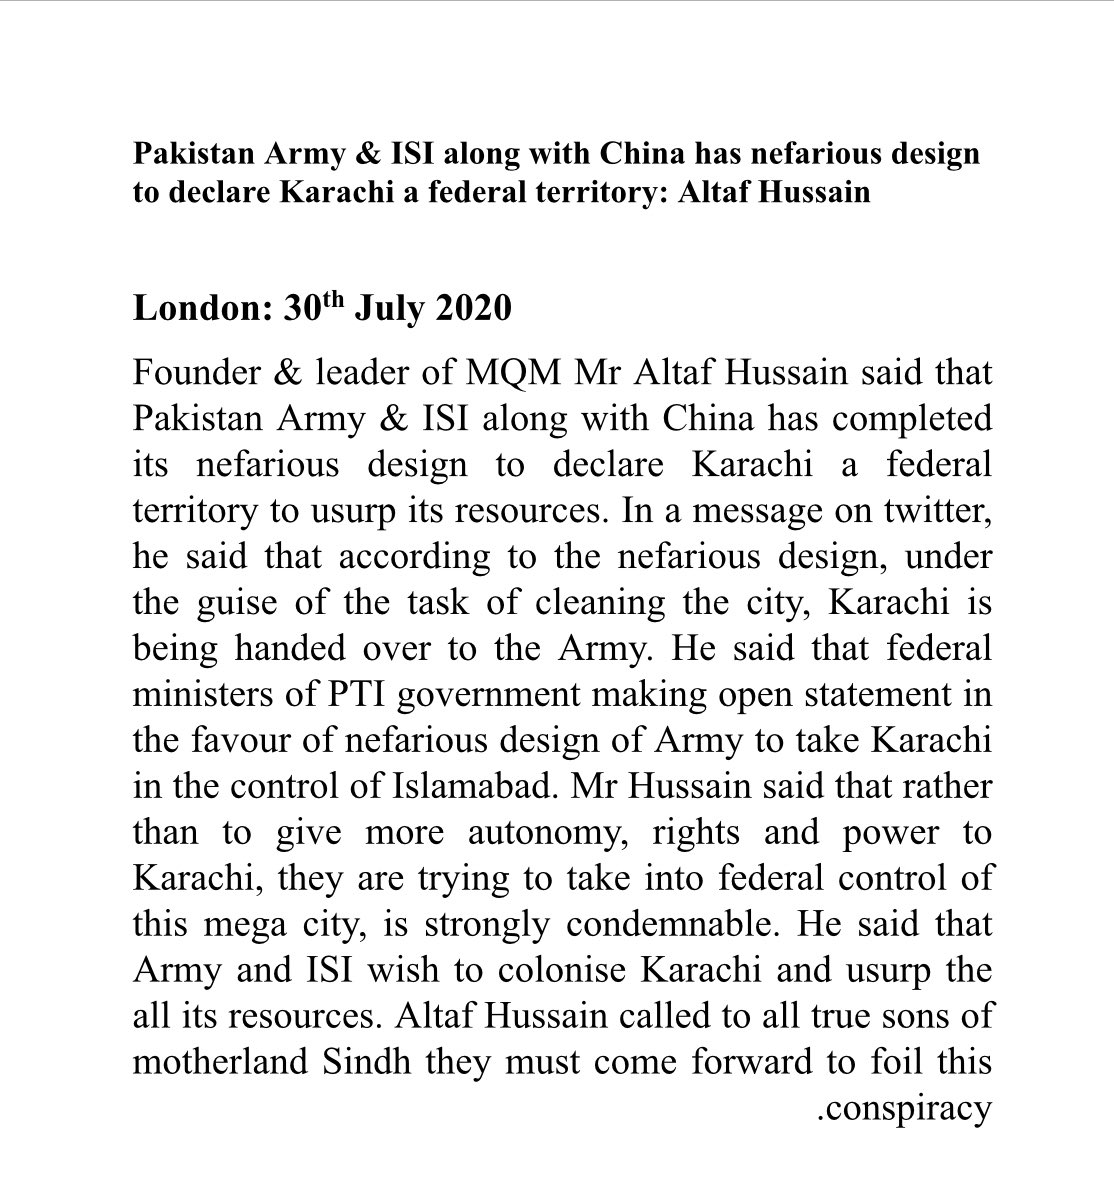 Pakistan Army & ISI along with China has nefarious design to declare Karachi a federal territory: Altaf Hussain https://t.co/hXWNSOC5kQ